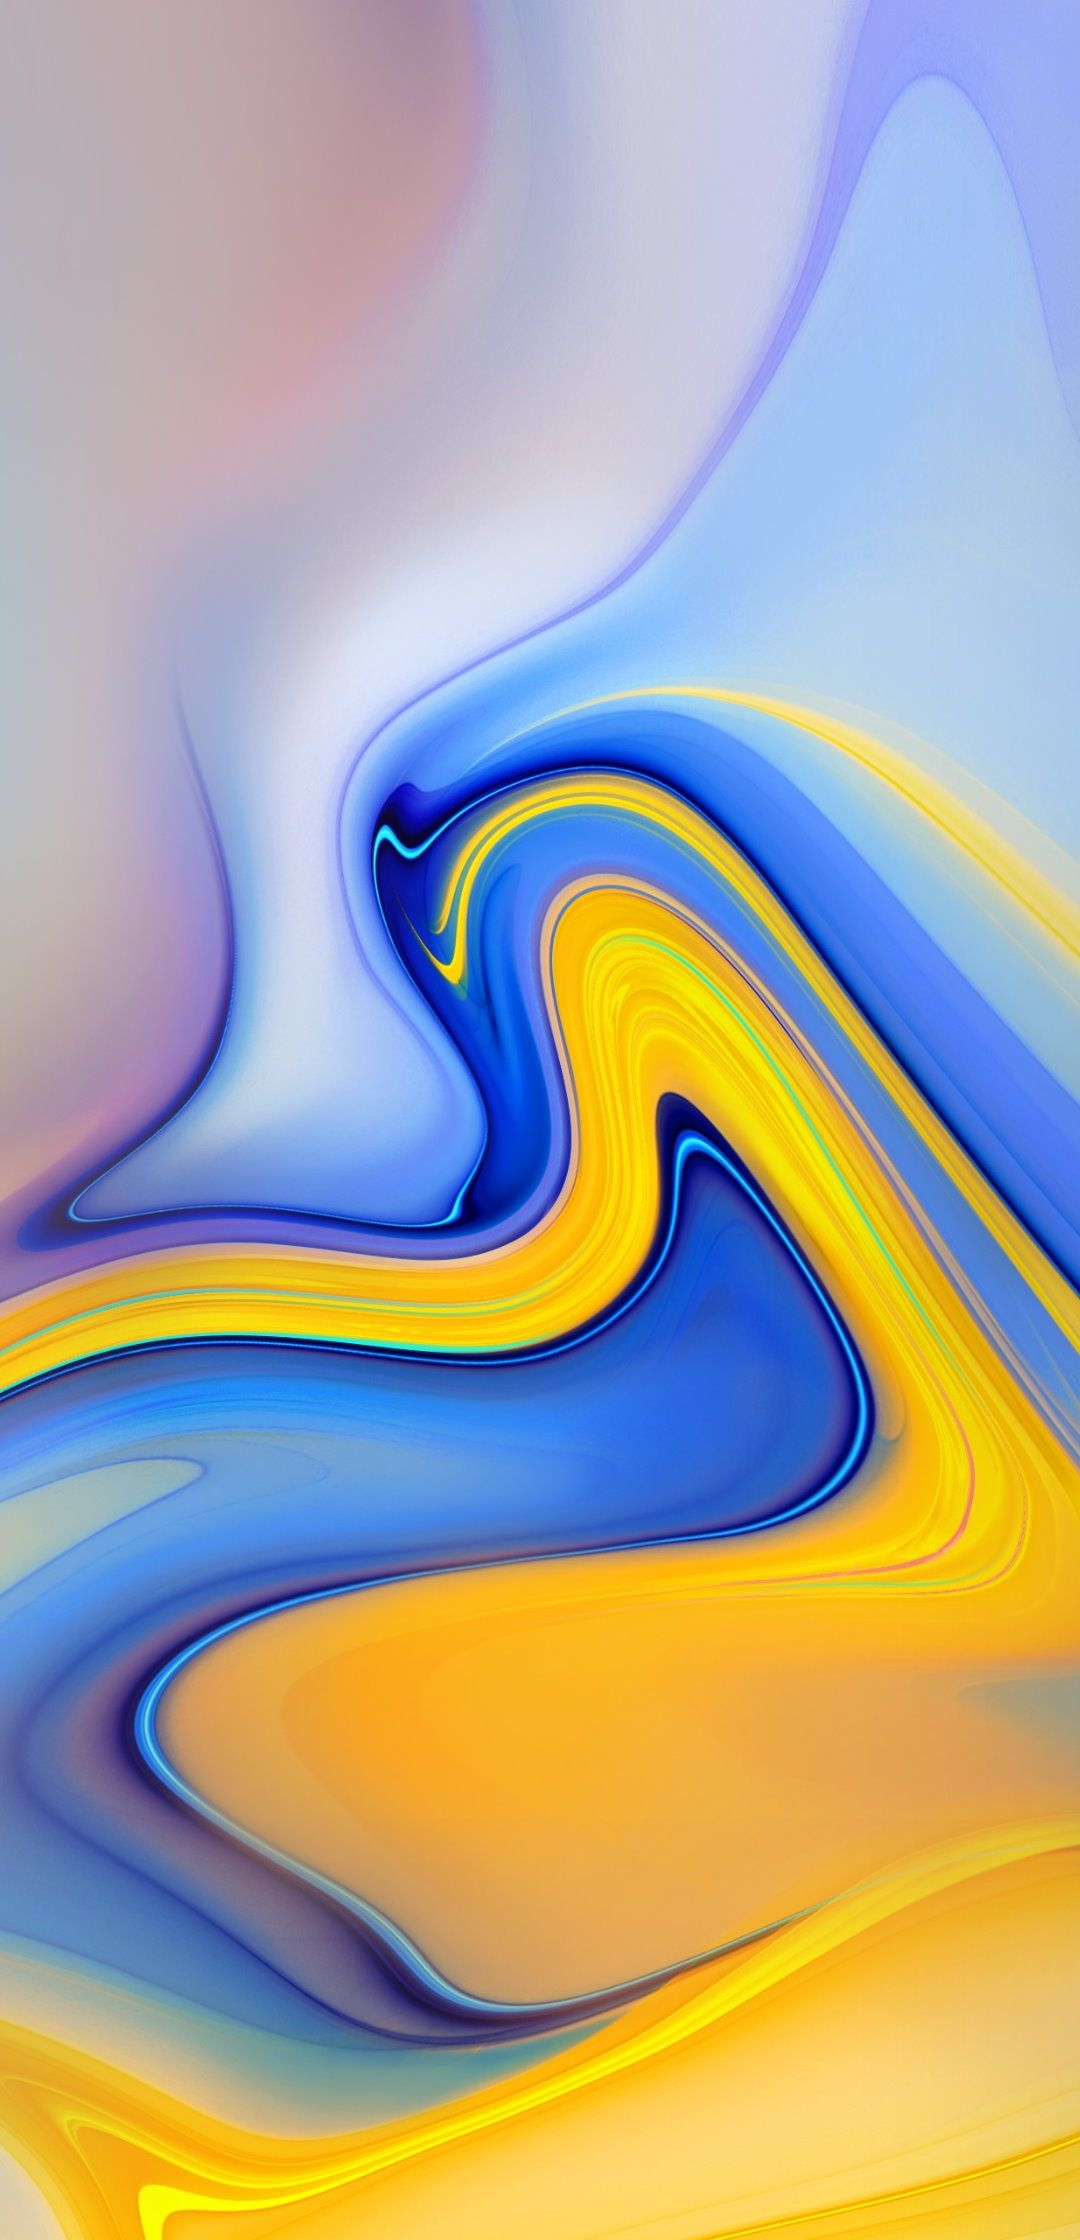 Wallpapers Huawei P20 Pro Pack 6